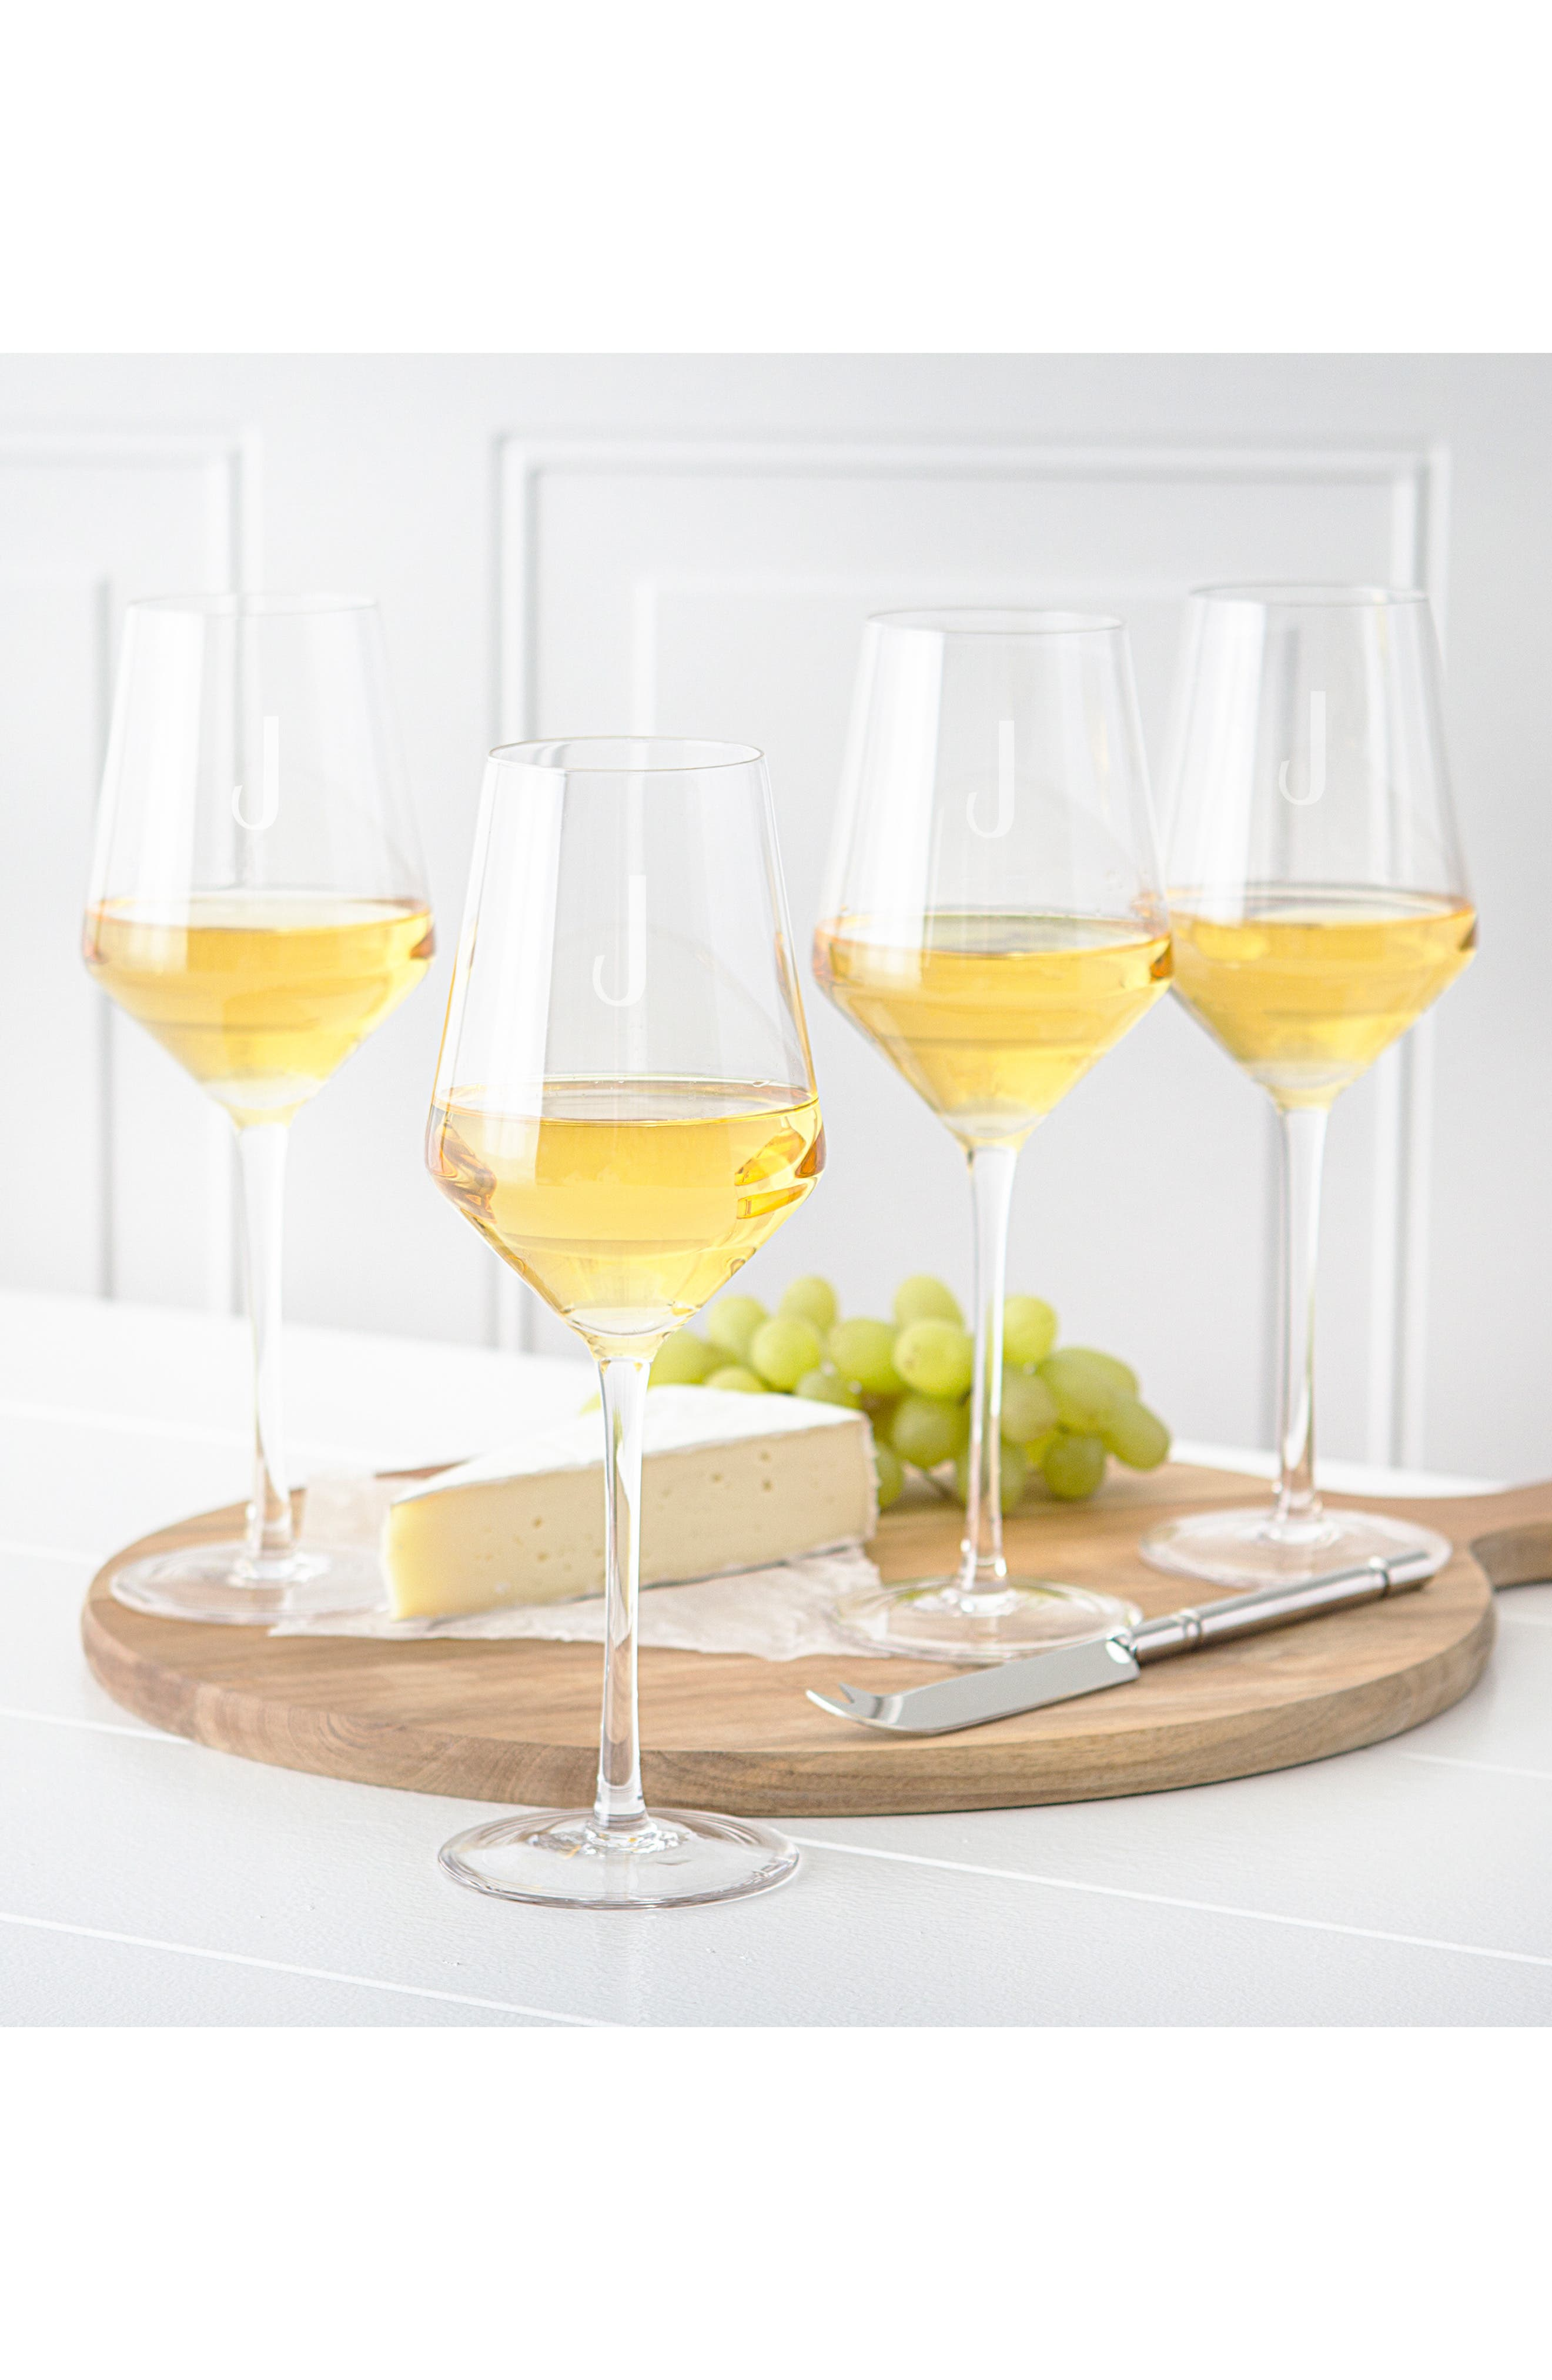 Estate Collection Set of 4 Monogram White Wine Glasses,                             Alternate thumbnail 3, color,                             100